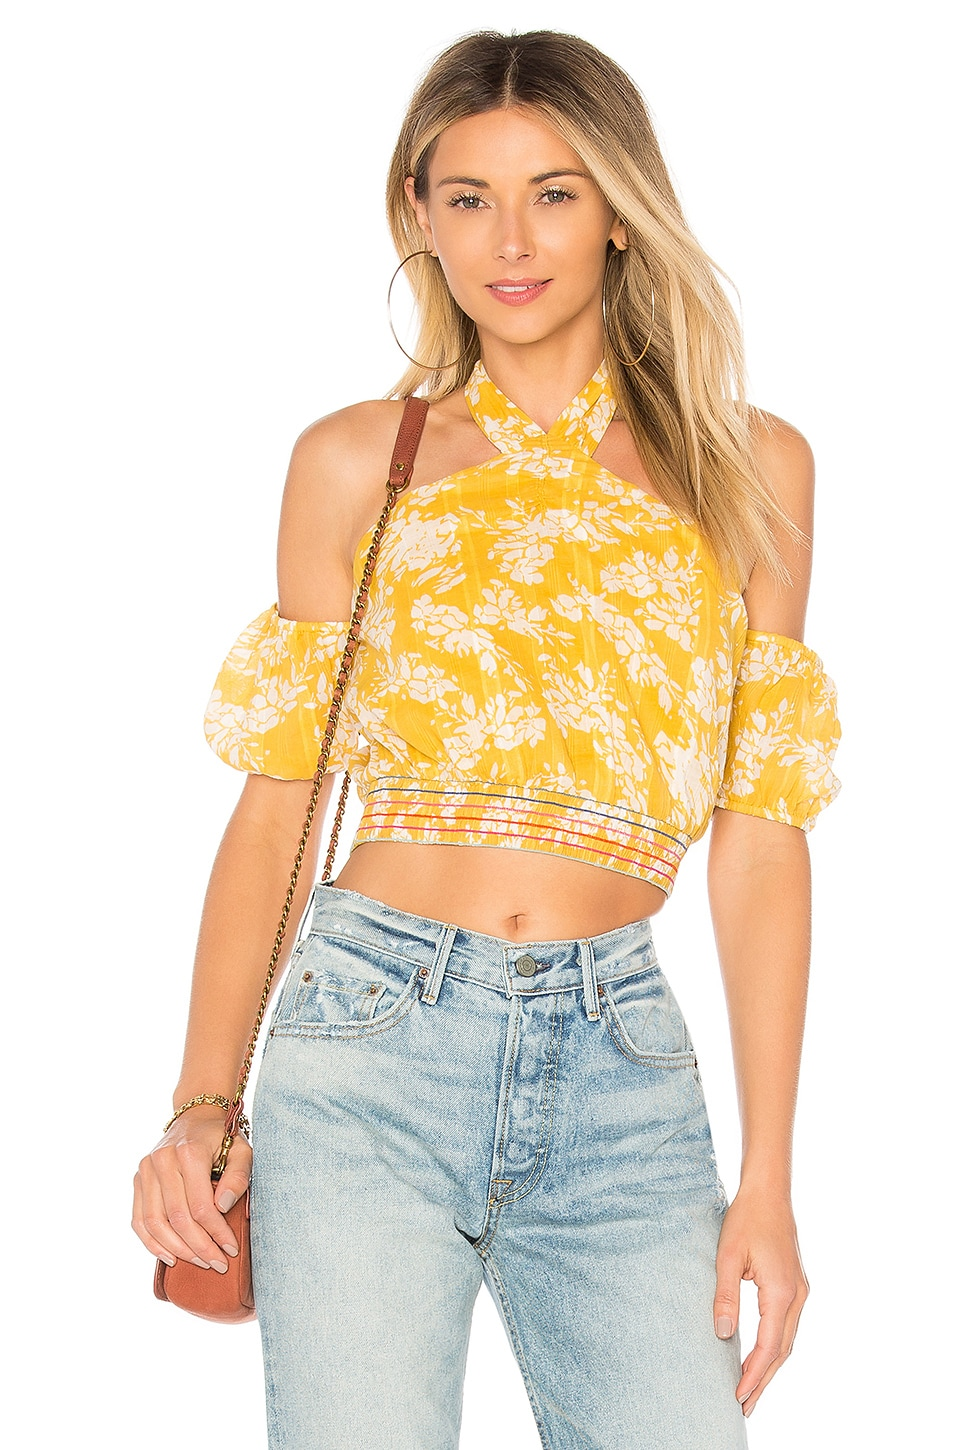 TULAROSA Spencer Cropped Halter Top in Yellow